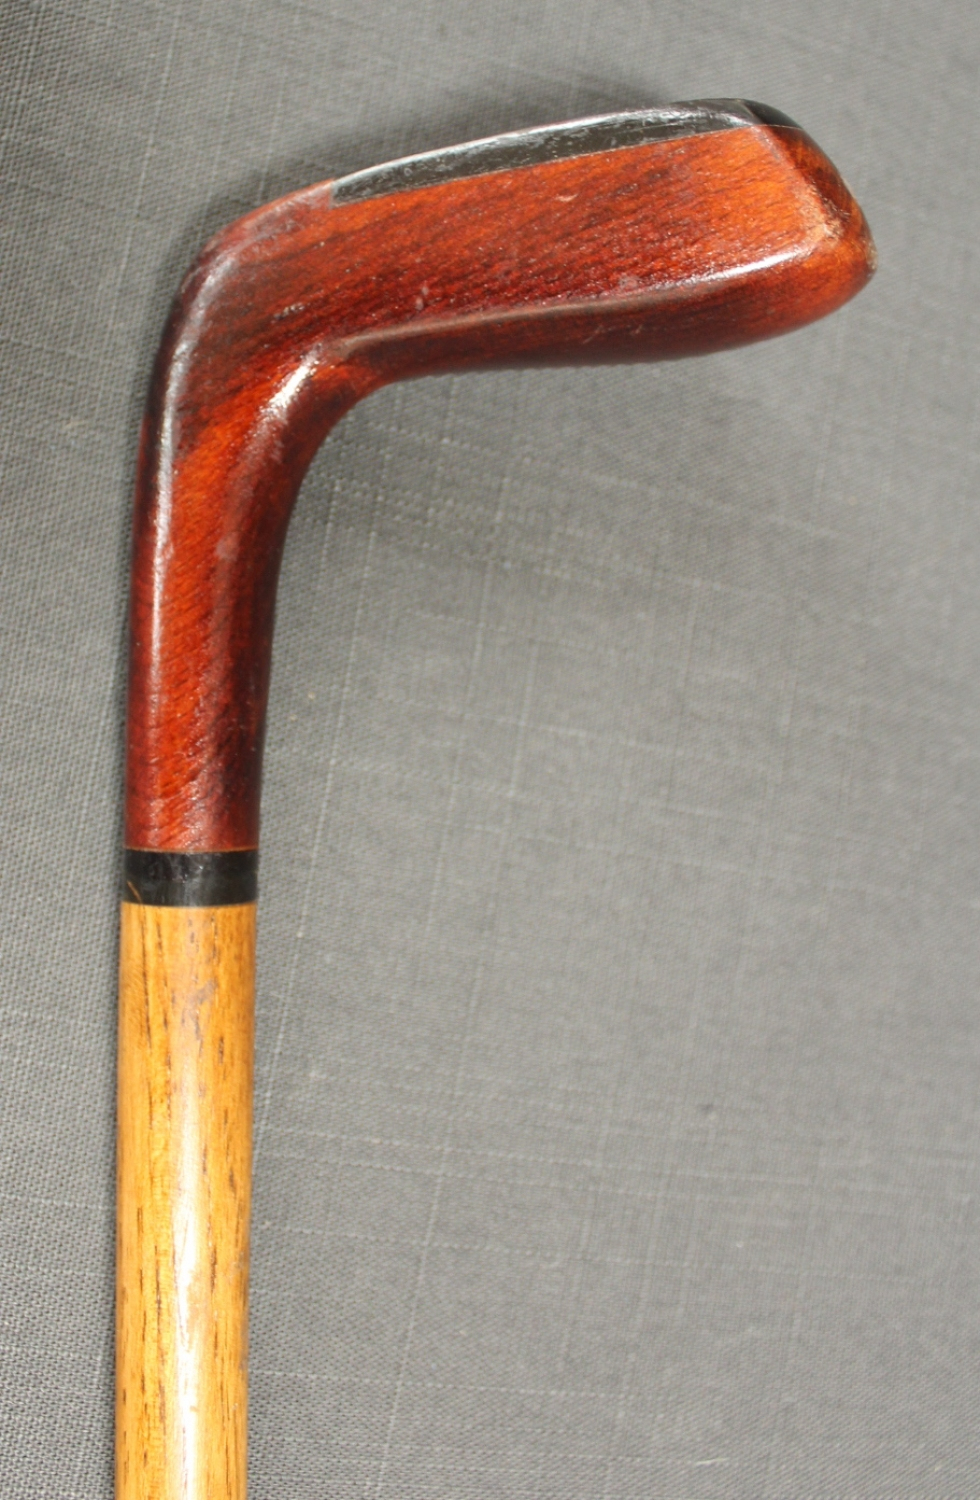 A hickory shafted Sunday stick